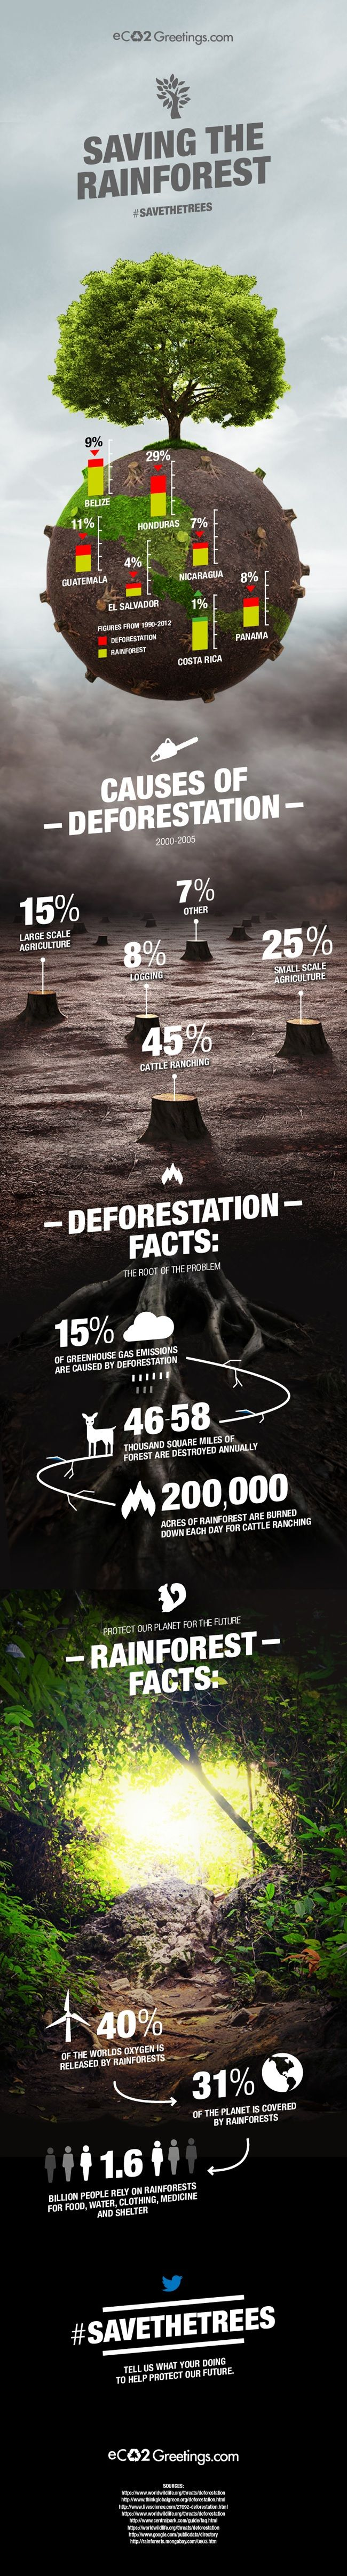 #MIDDLEEAST #SWD #GREEN2STAY Deforestation quick facts for desert dwellers Green Prophet Guest  Category: Cities